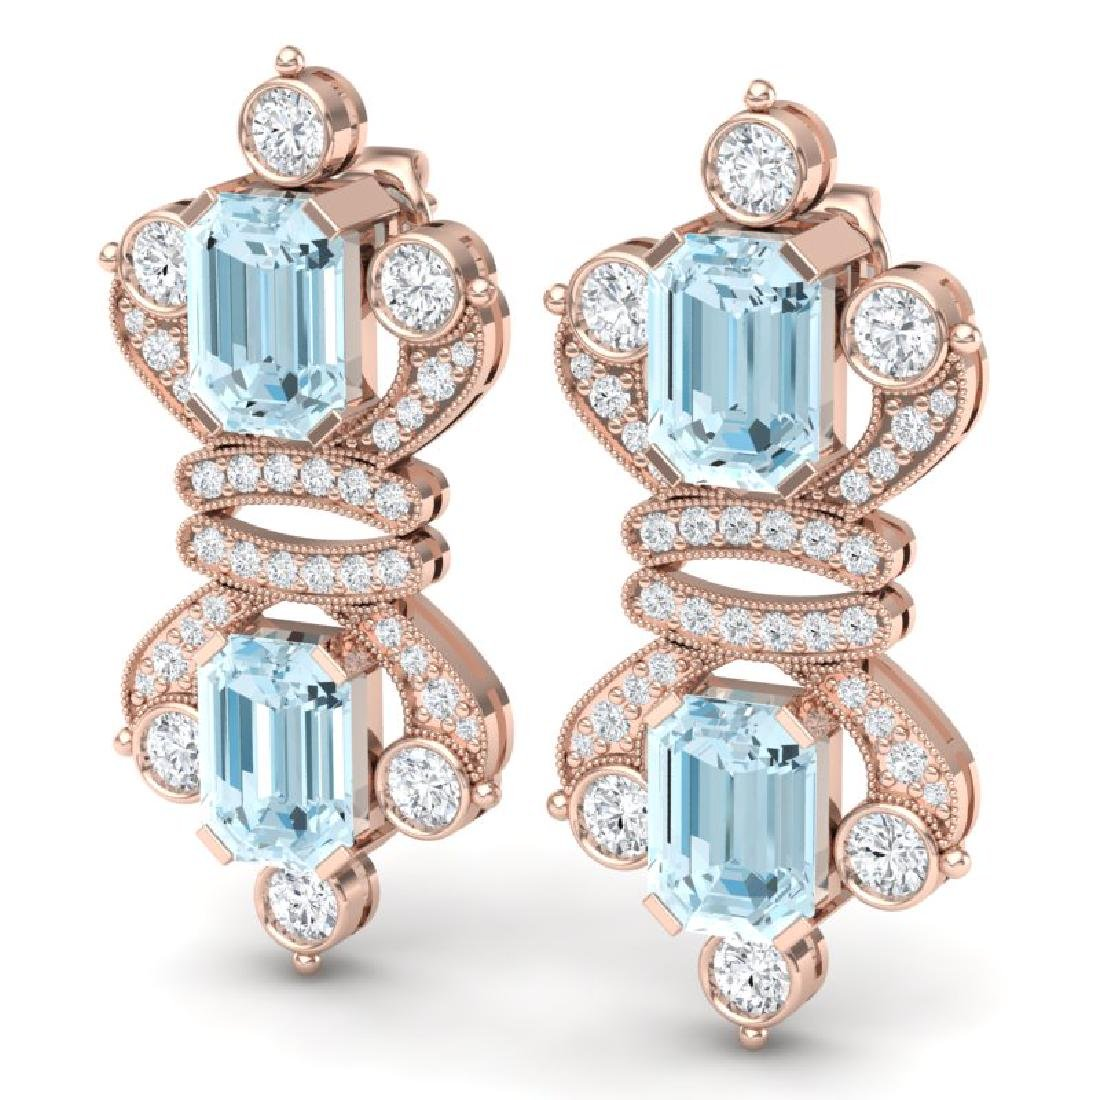 28.39 CTW Royalty Sky Topaz & VS Diamond Earrings 18K - 2